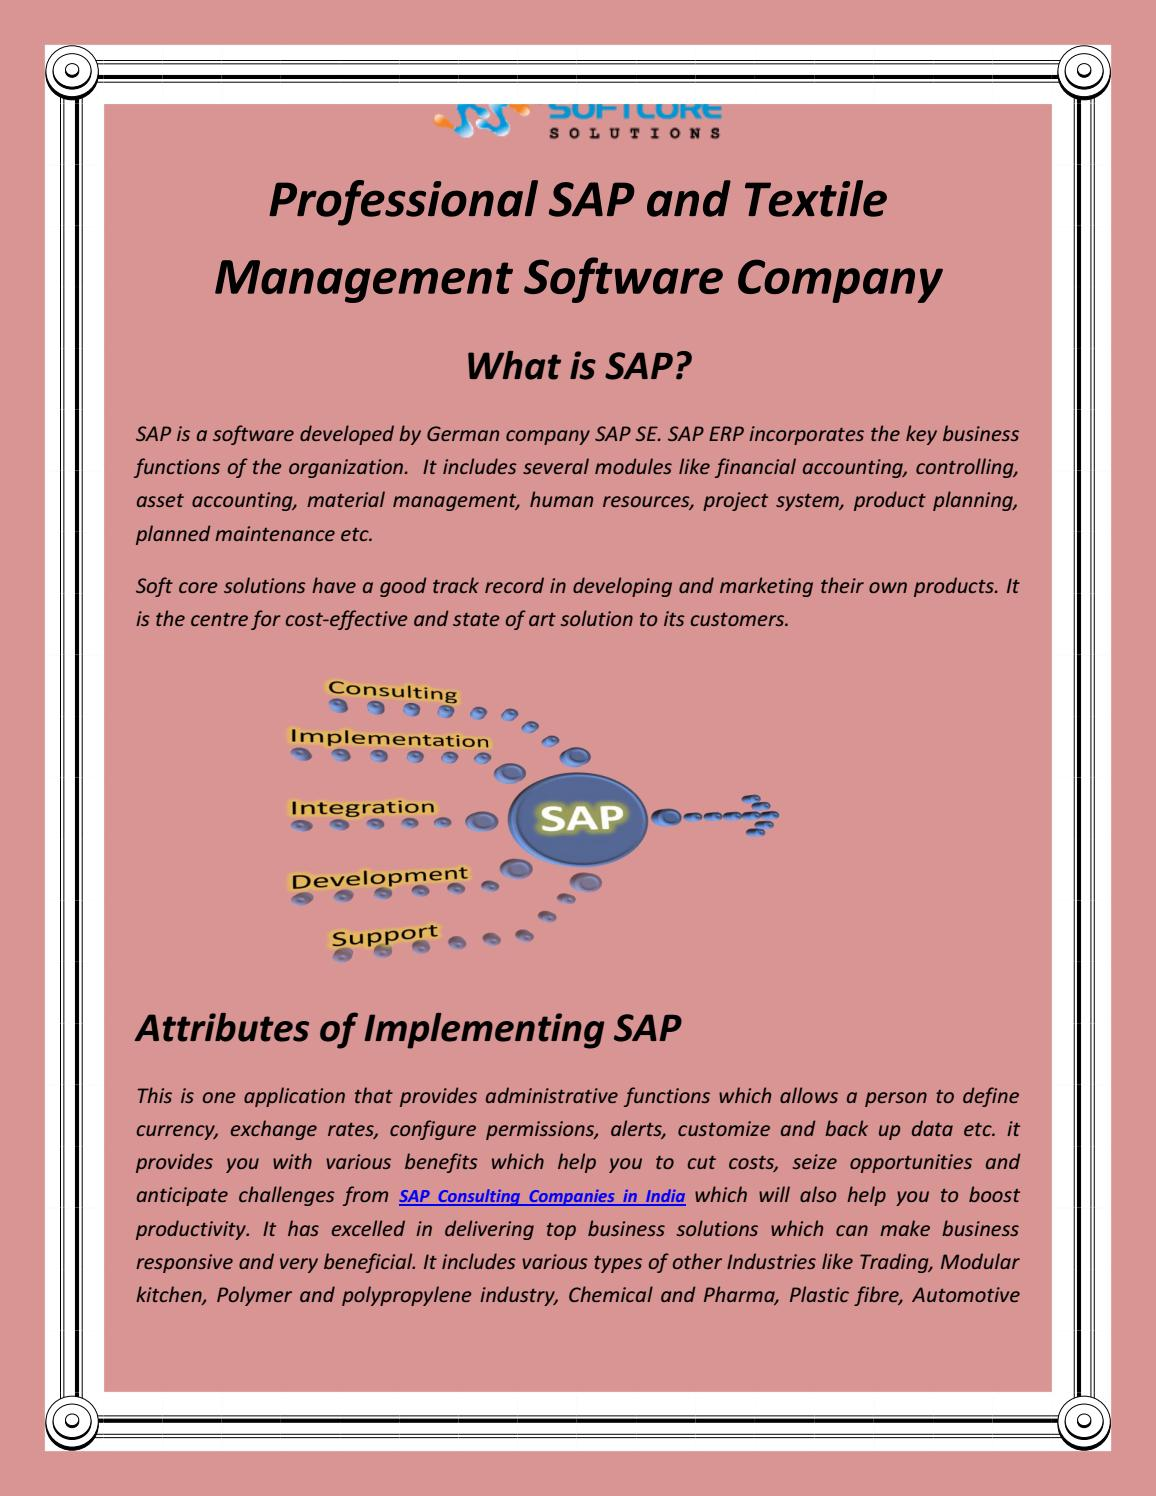 Professional SAP and Textile Management Software Company by